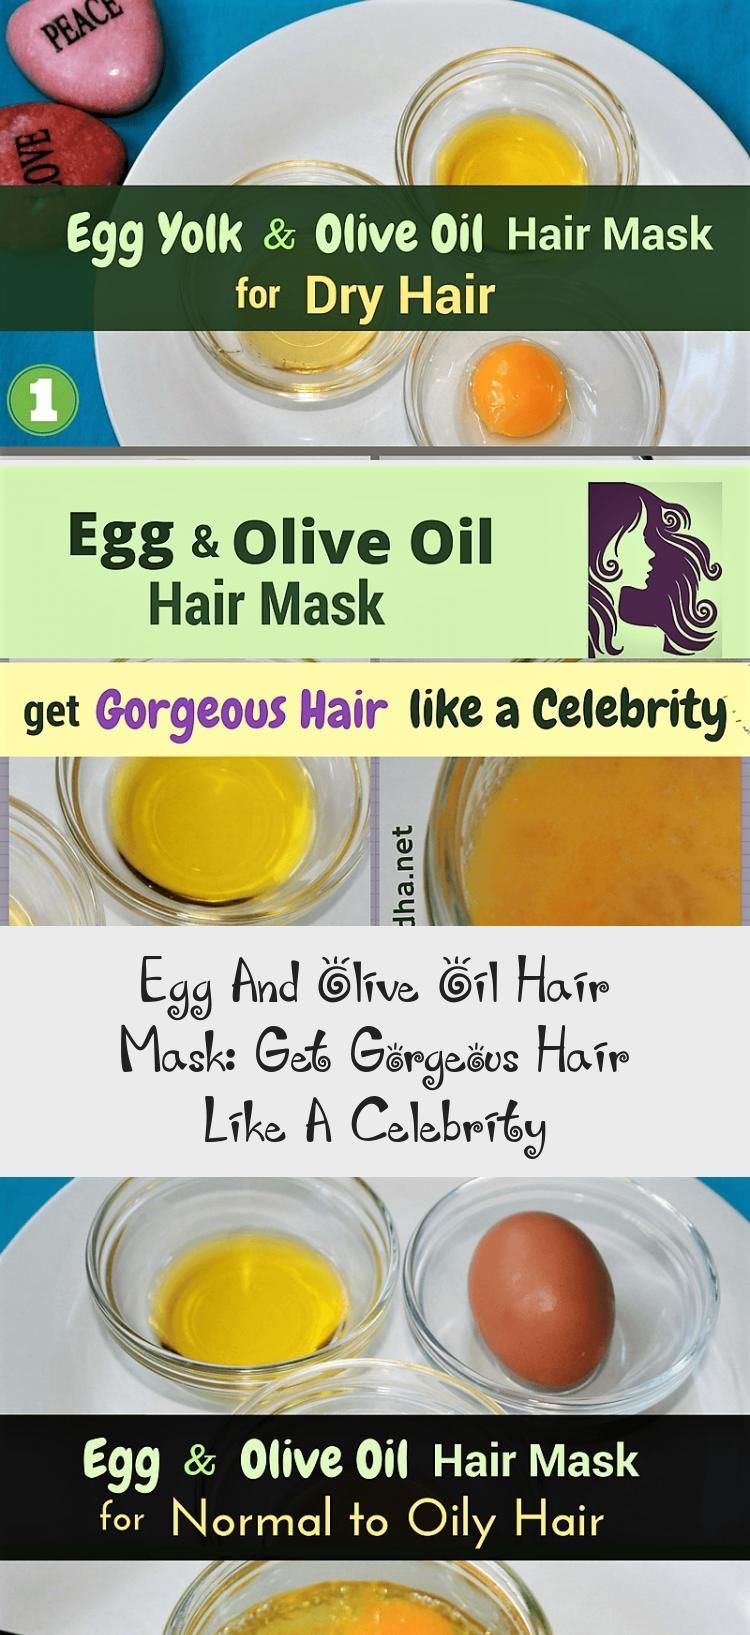 olive oil and egg hair mask for hair growth #hairgrowthSharkTank #ScalpDetoxhairgrowth #Sulfur8hairgrowth #hairgrowthLength #hairgrowthAfterChemo